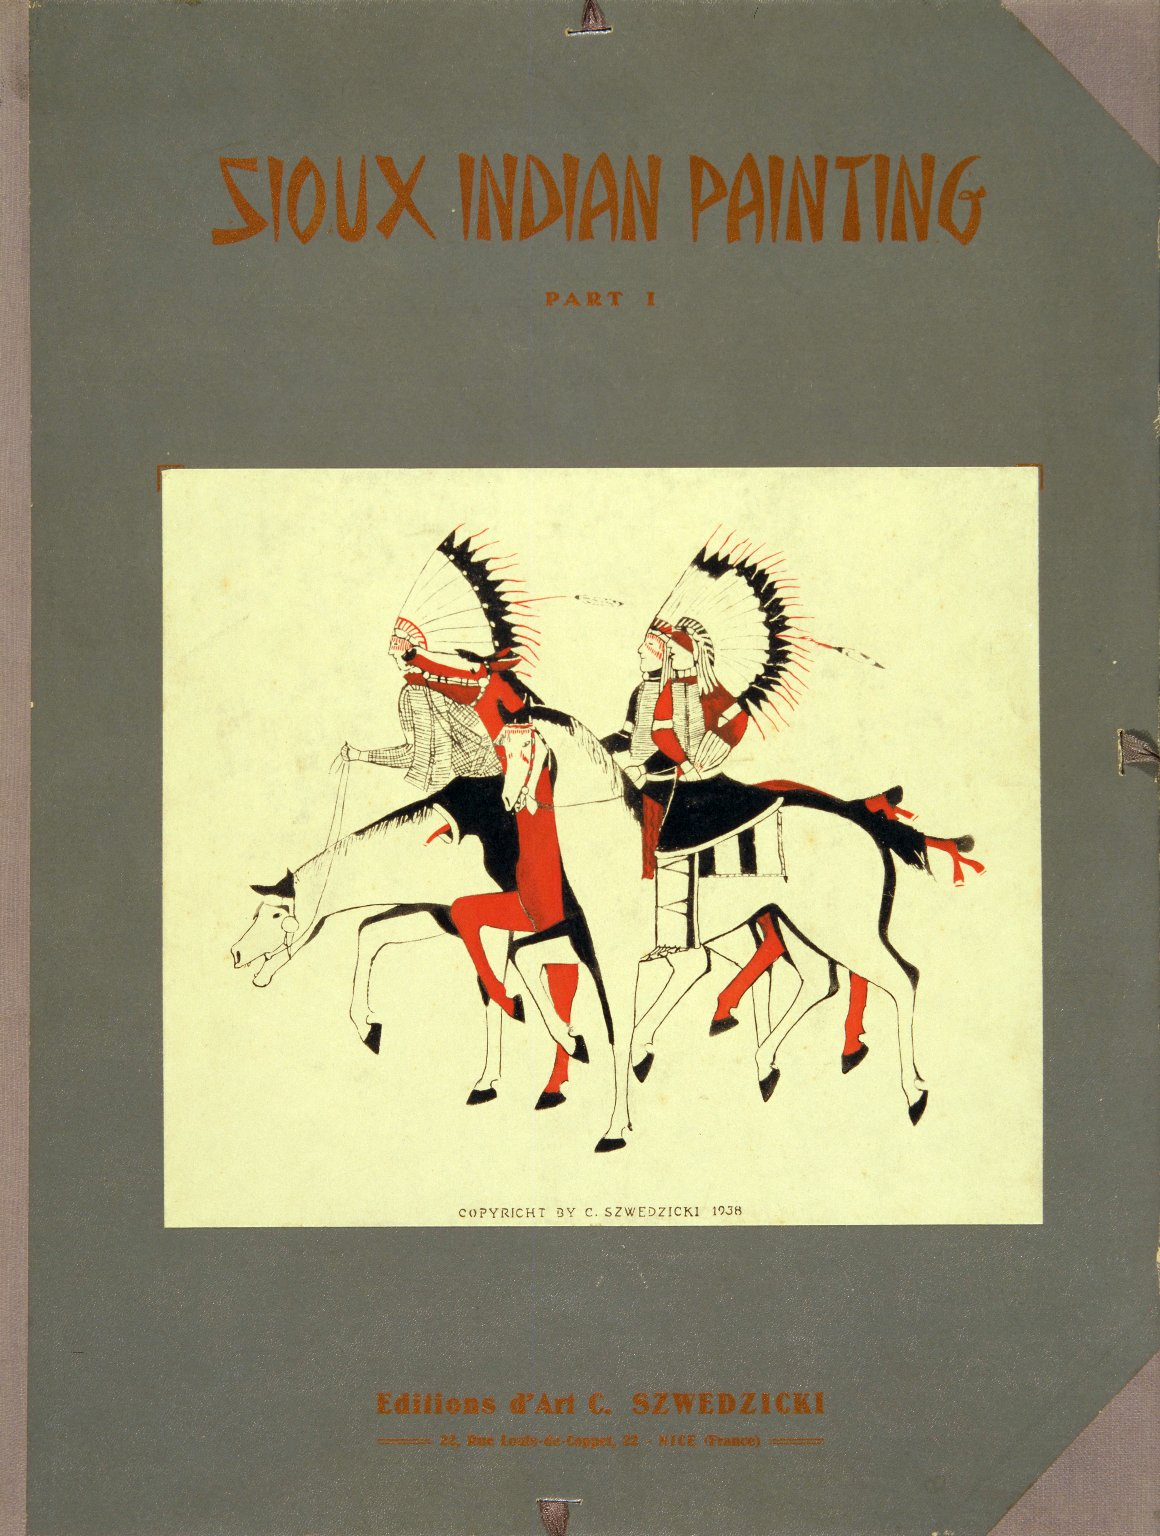 Sioux Indian painting